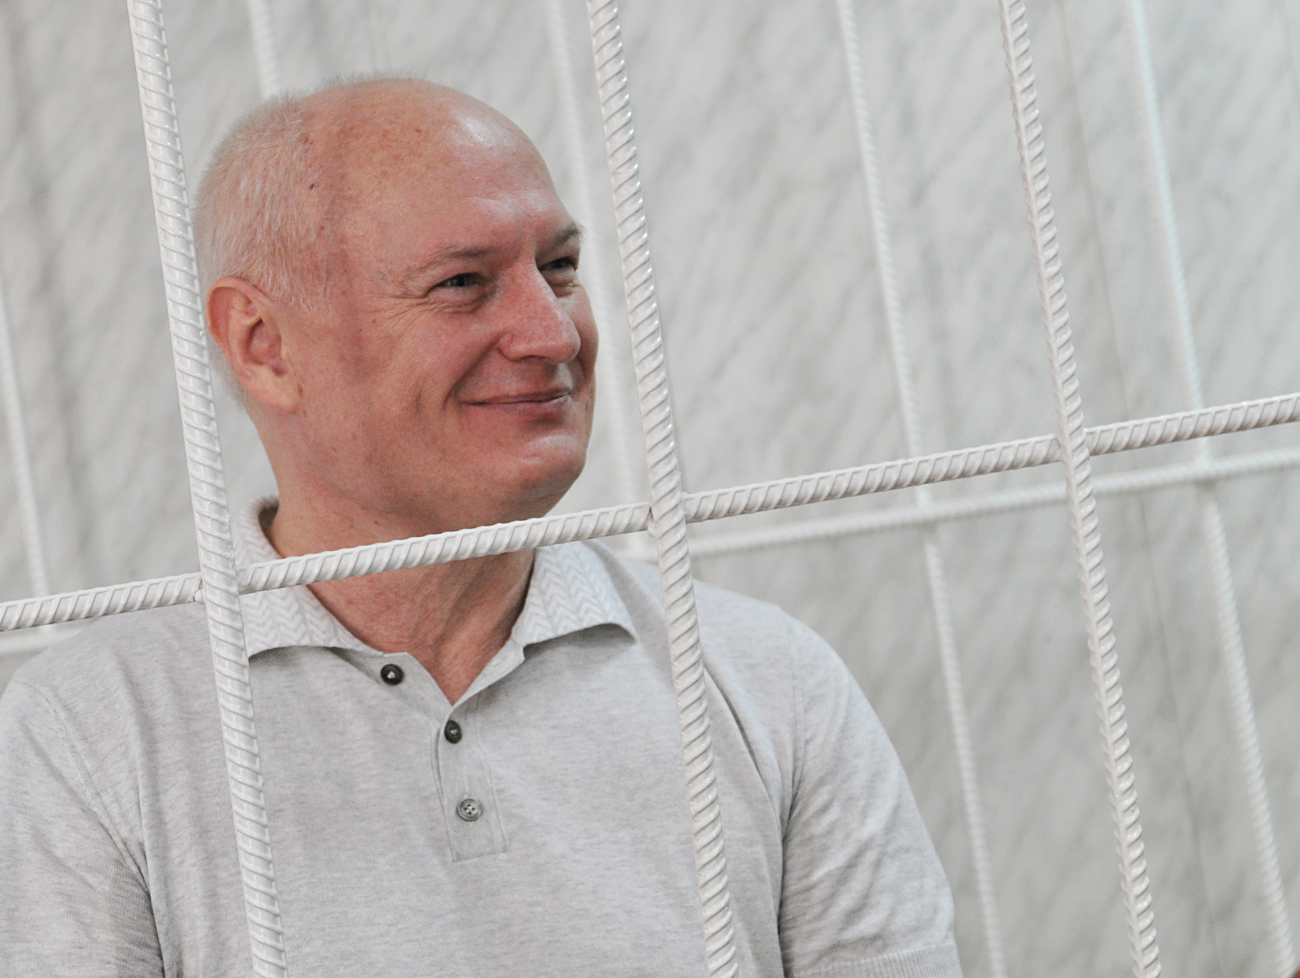 Igor Bestuzhev was sentenced to nine years in a high-security prison and fined 500 million rubles ($17,3 million). Photo: Bestuzhev in court. Source: TASS